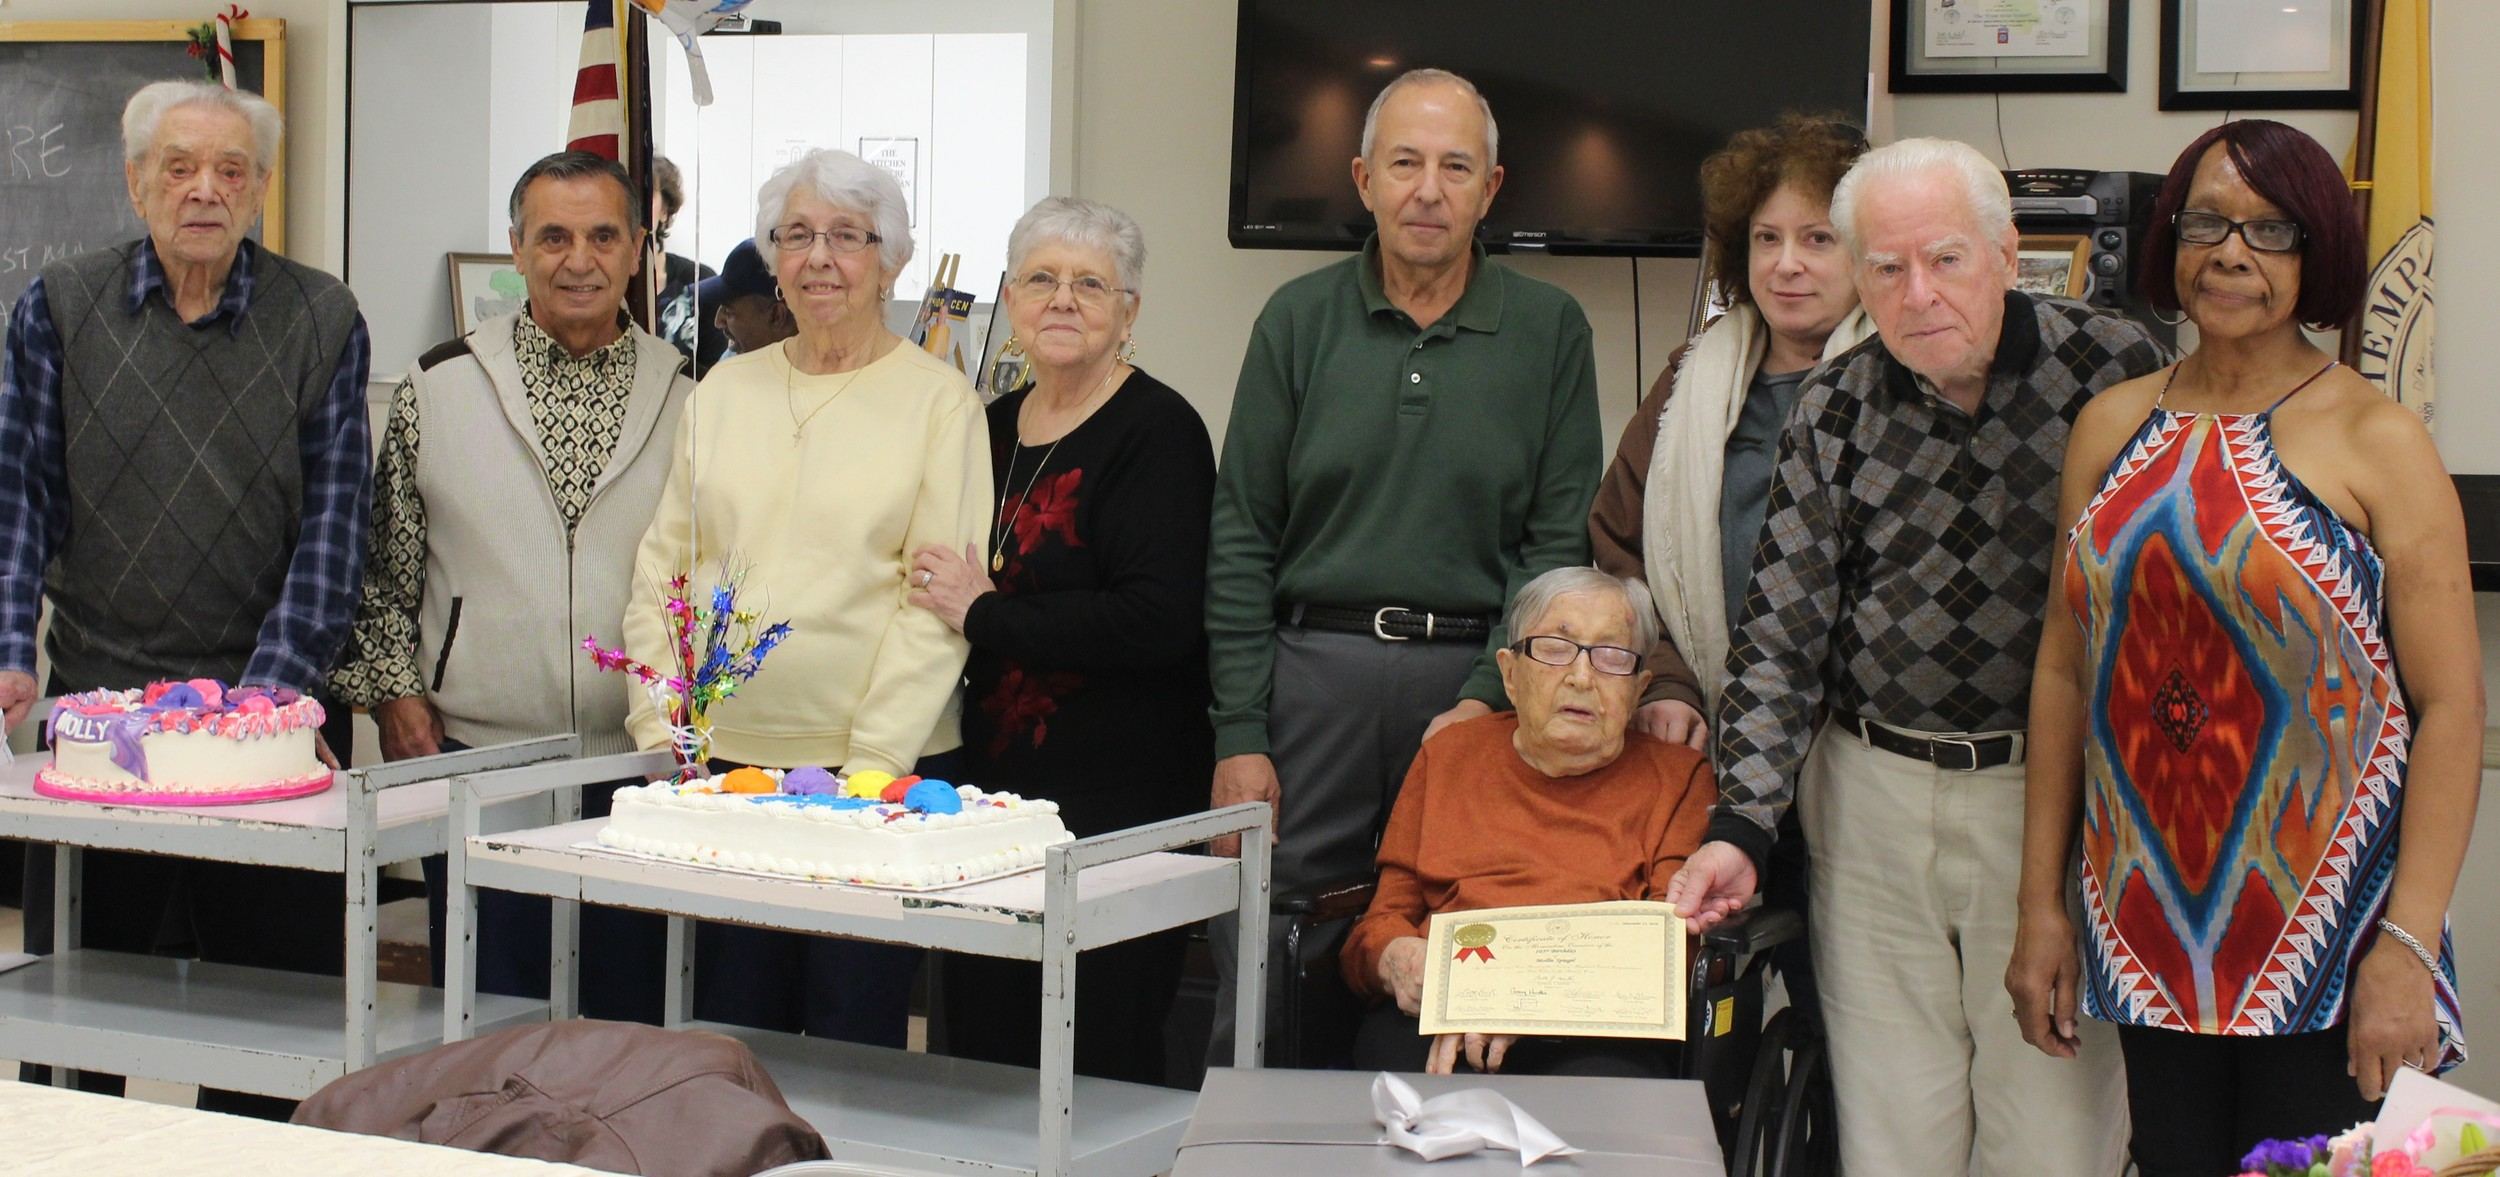 Mollie Spiegel celebrated her 106th birthday with family and friends at the East Meadow Senior Center on Nov. 30.